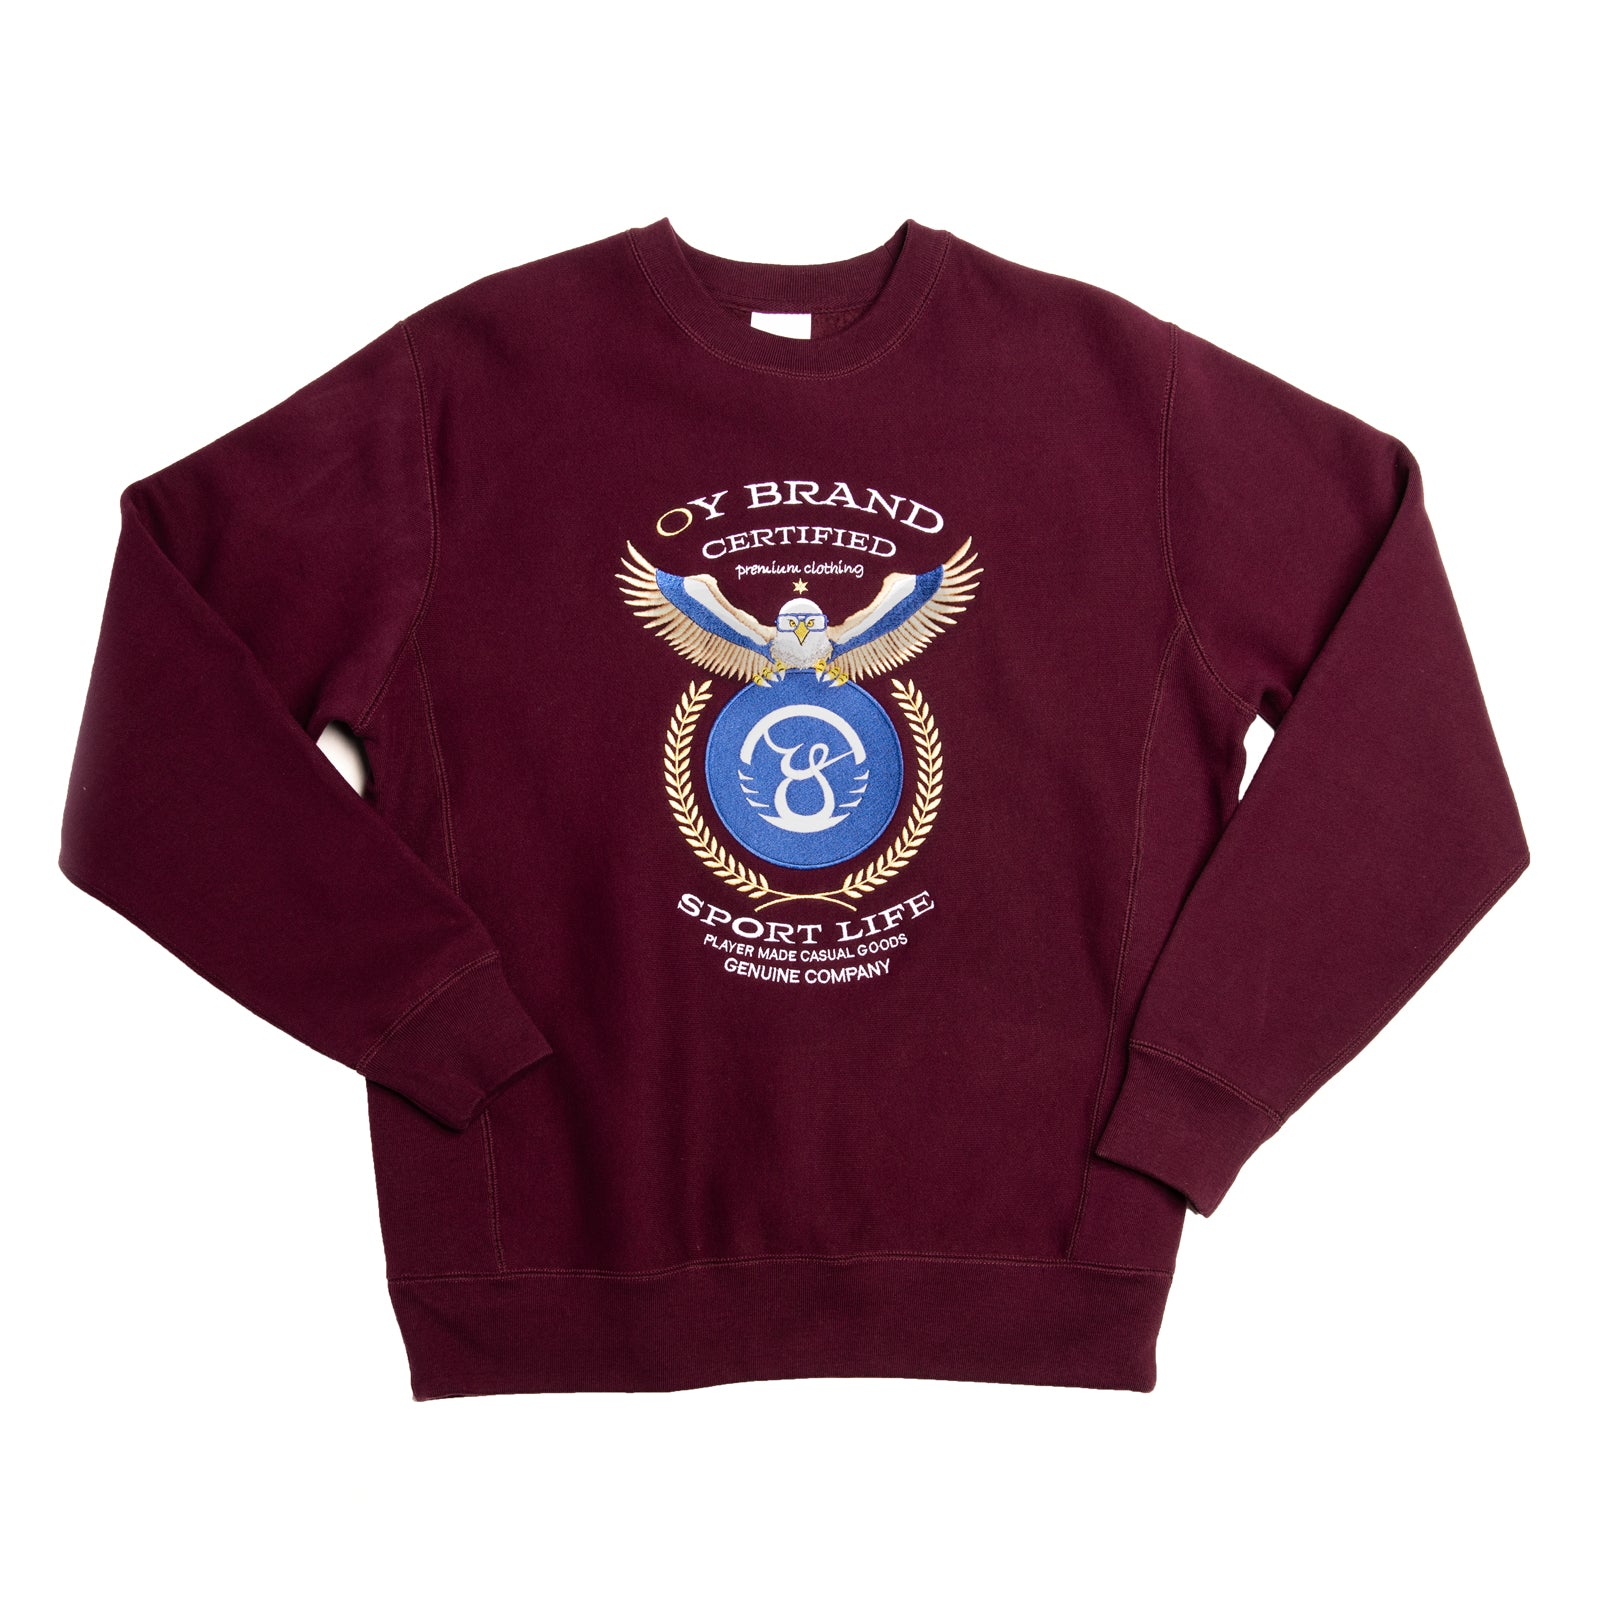 heavyweight crewneck sweater with large eagle design